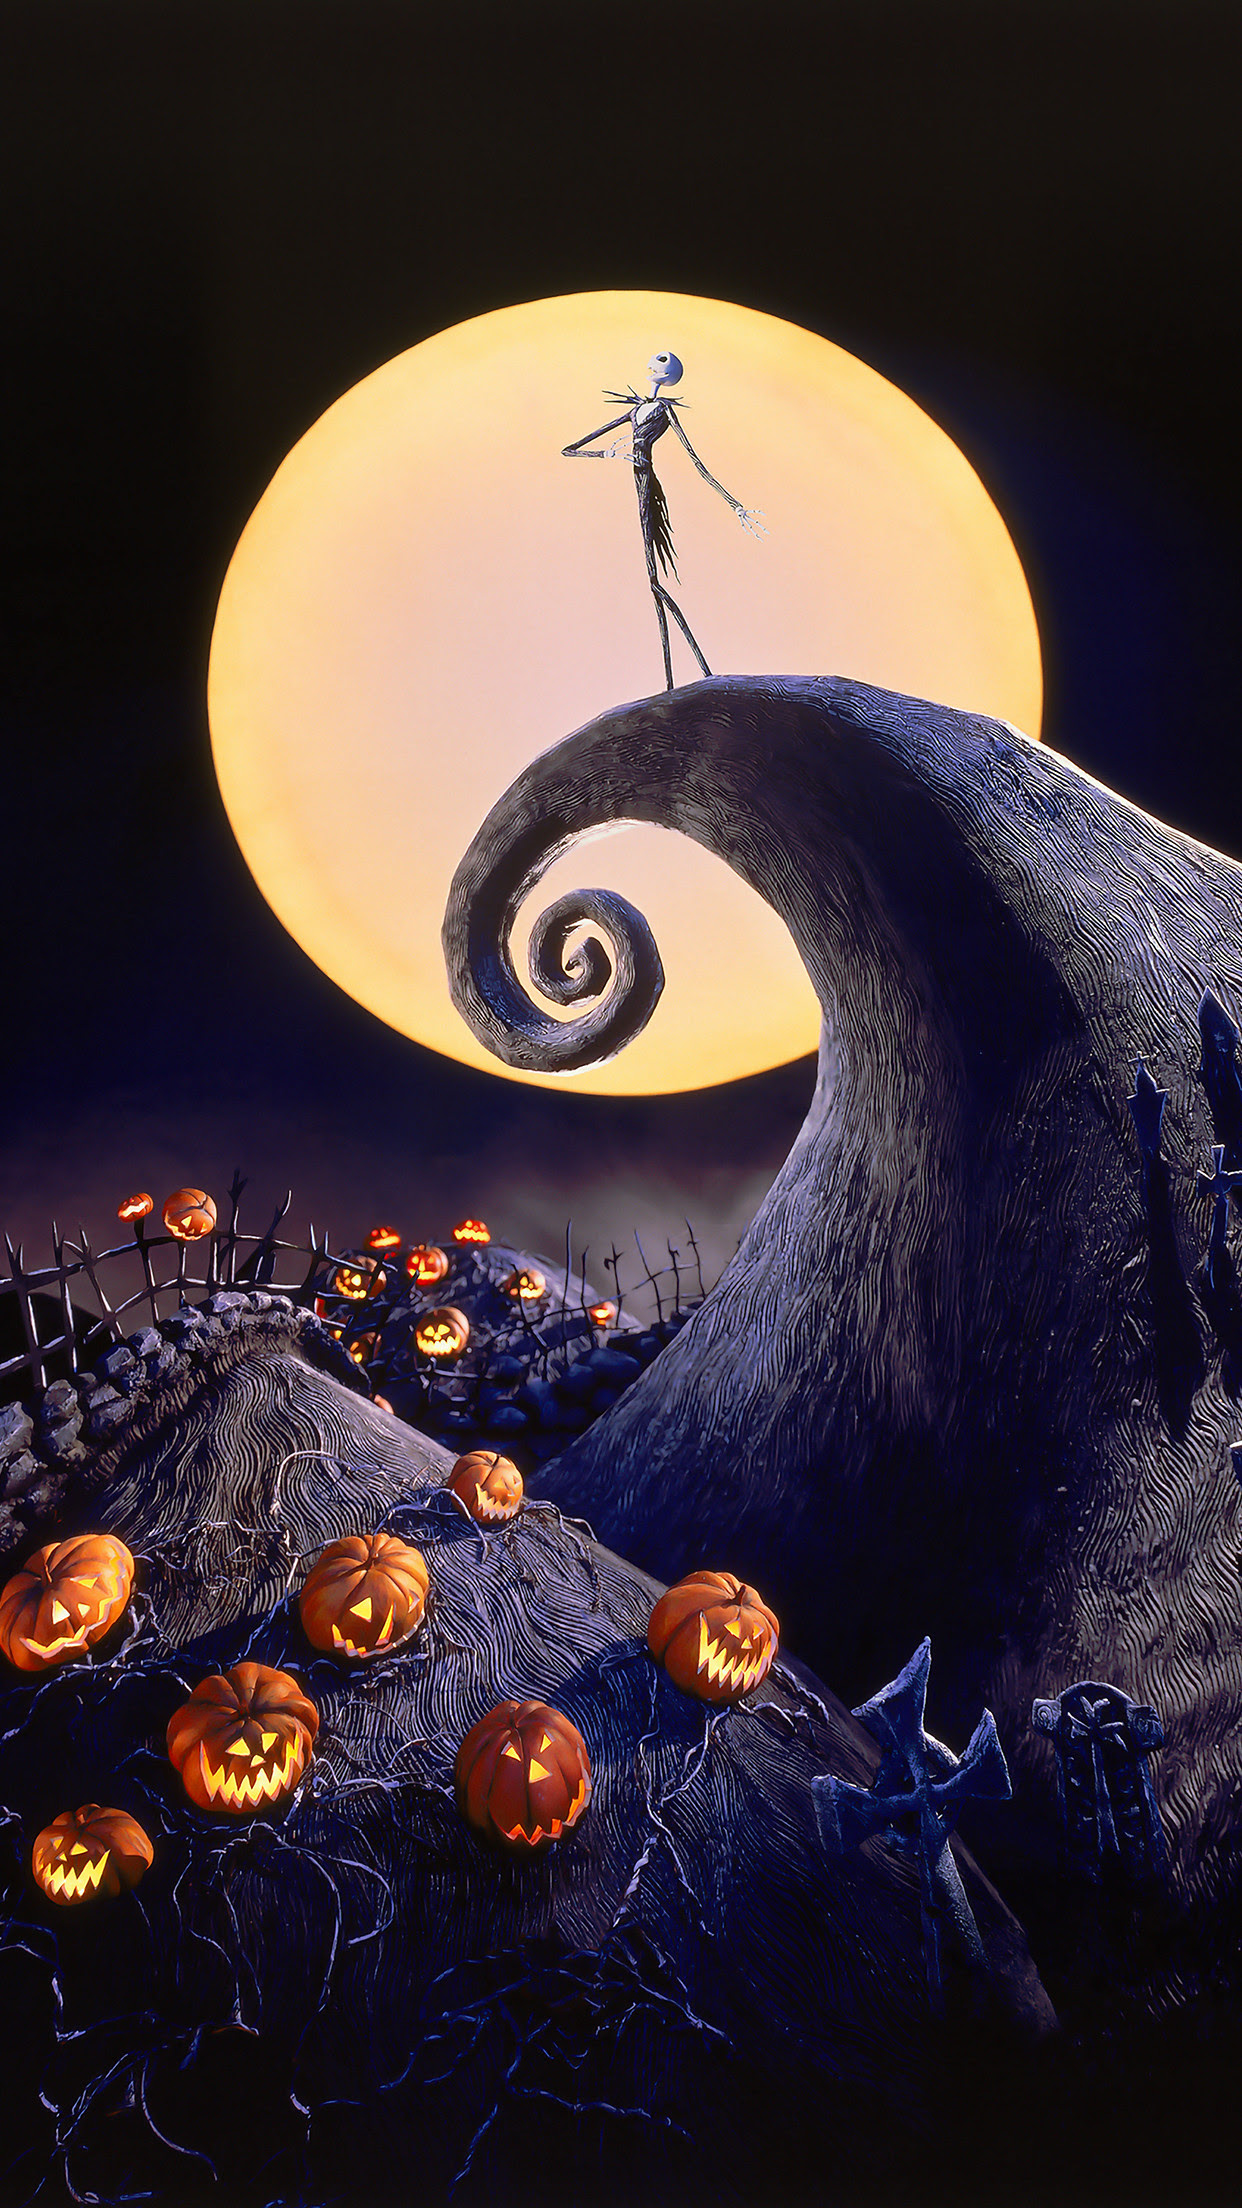 Nightmare Before Christmas Iphone Wallpaper 66 Images